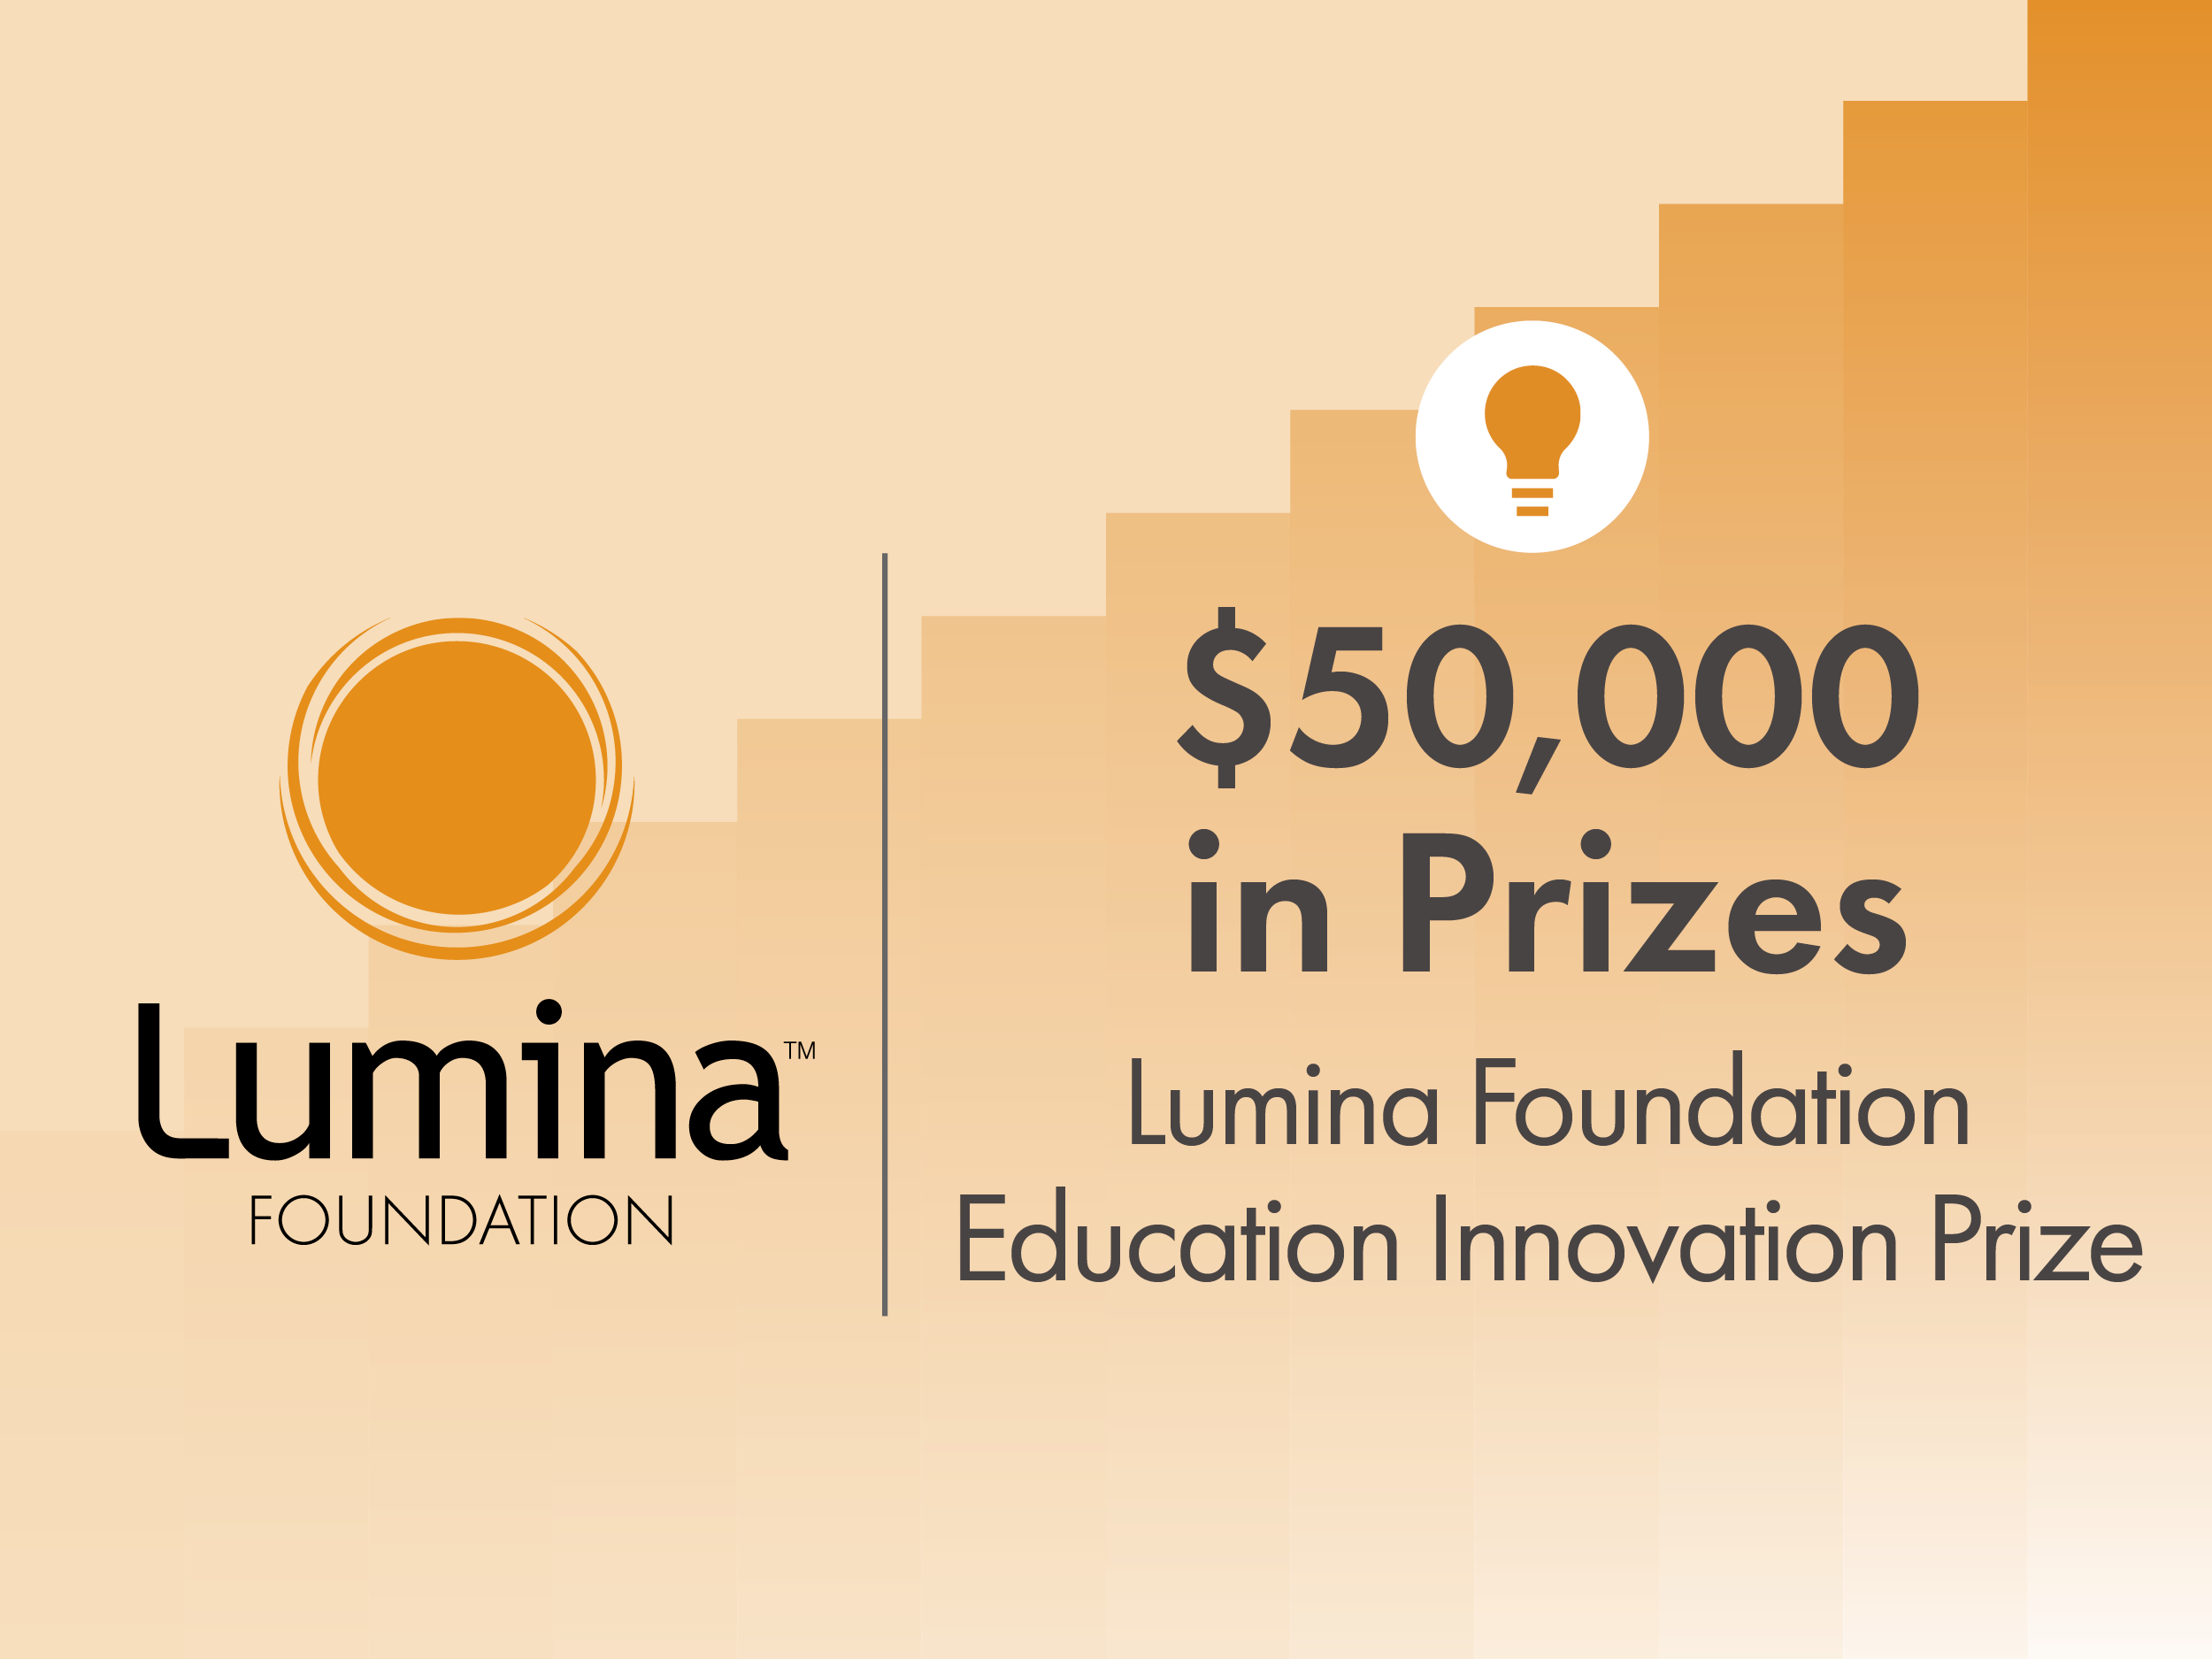 Lumina foundation for education investment define malinvestment